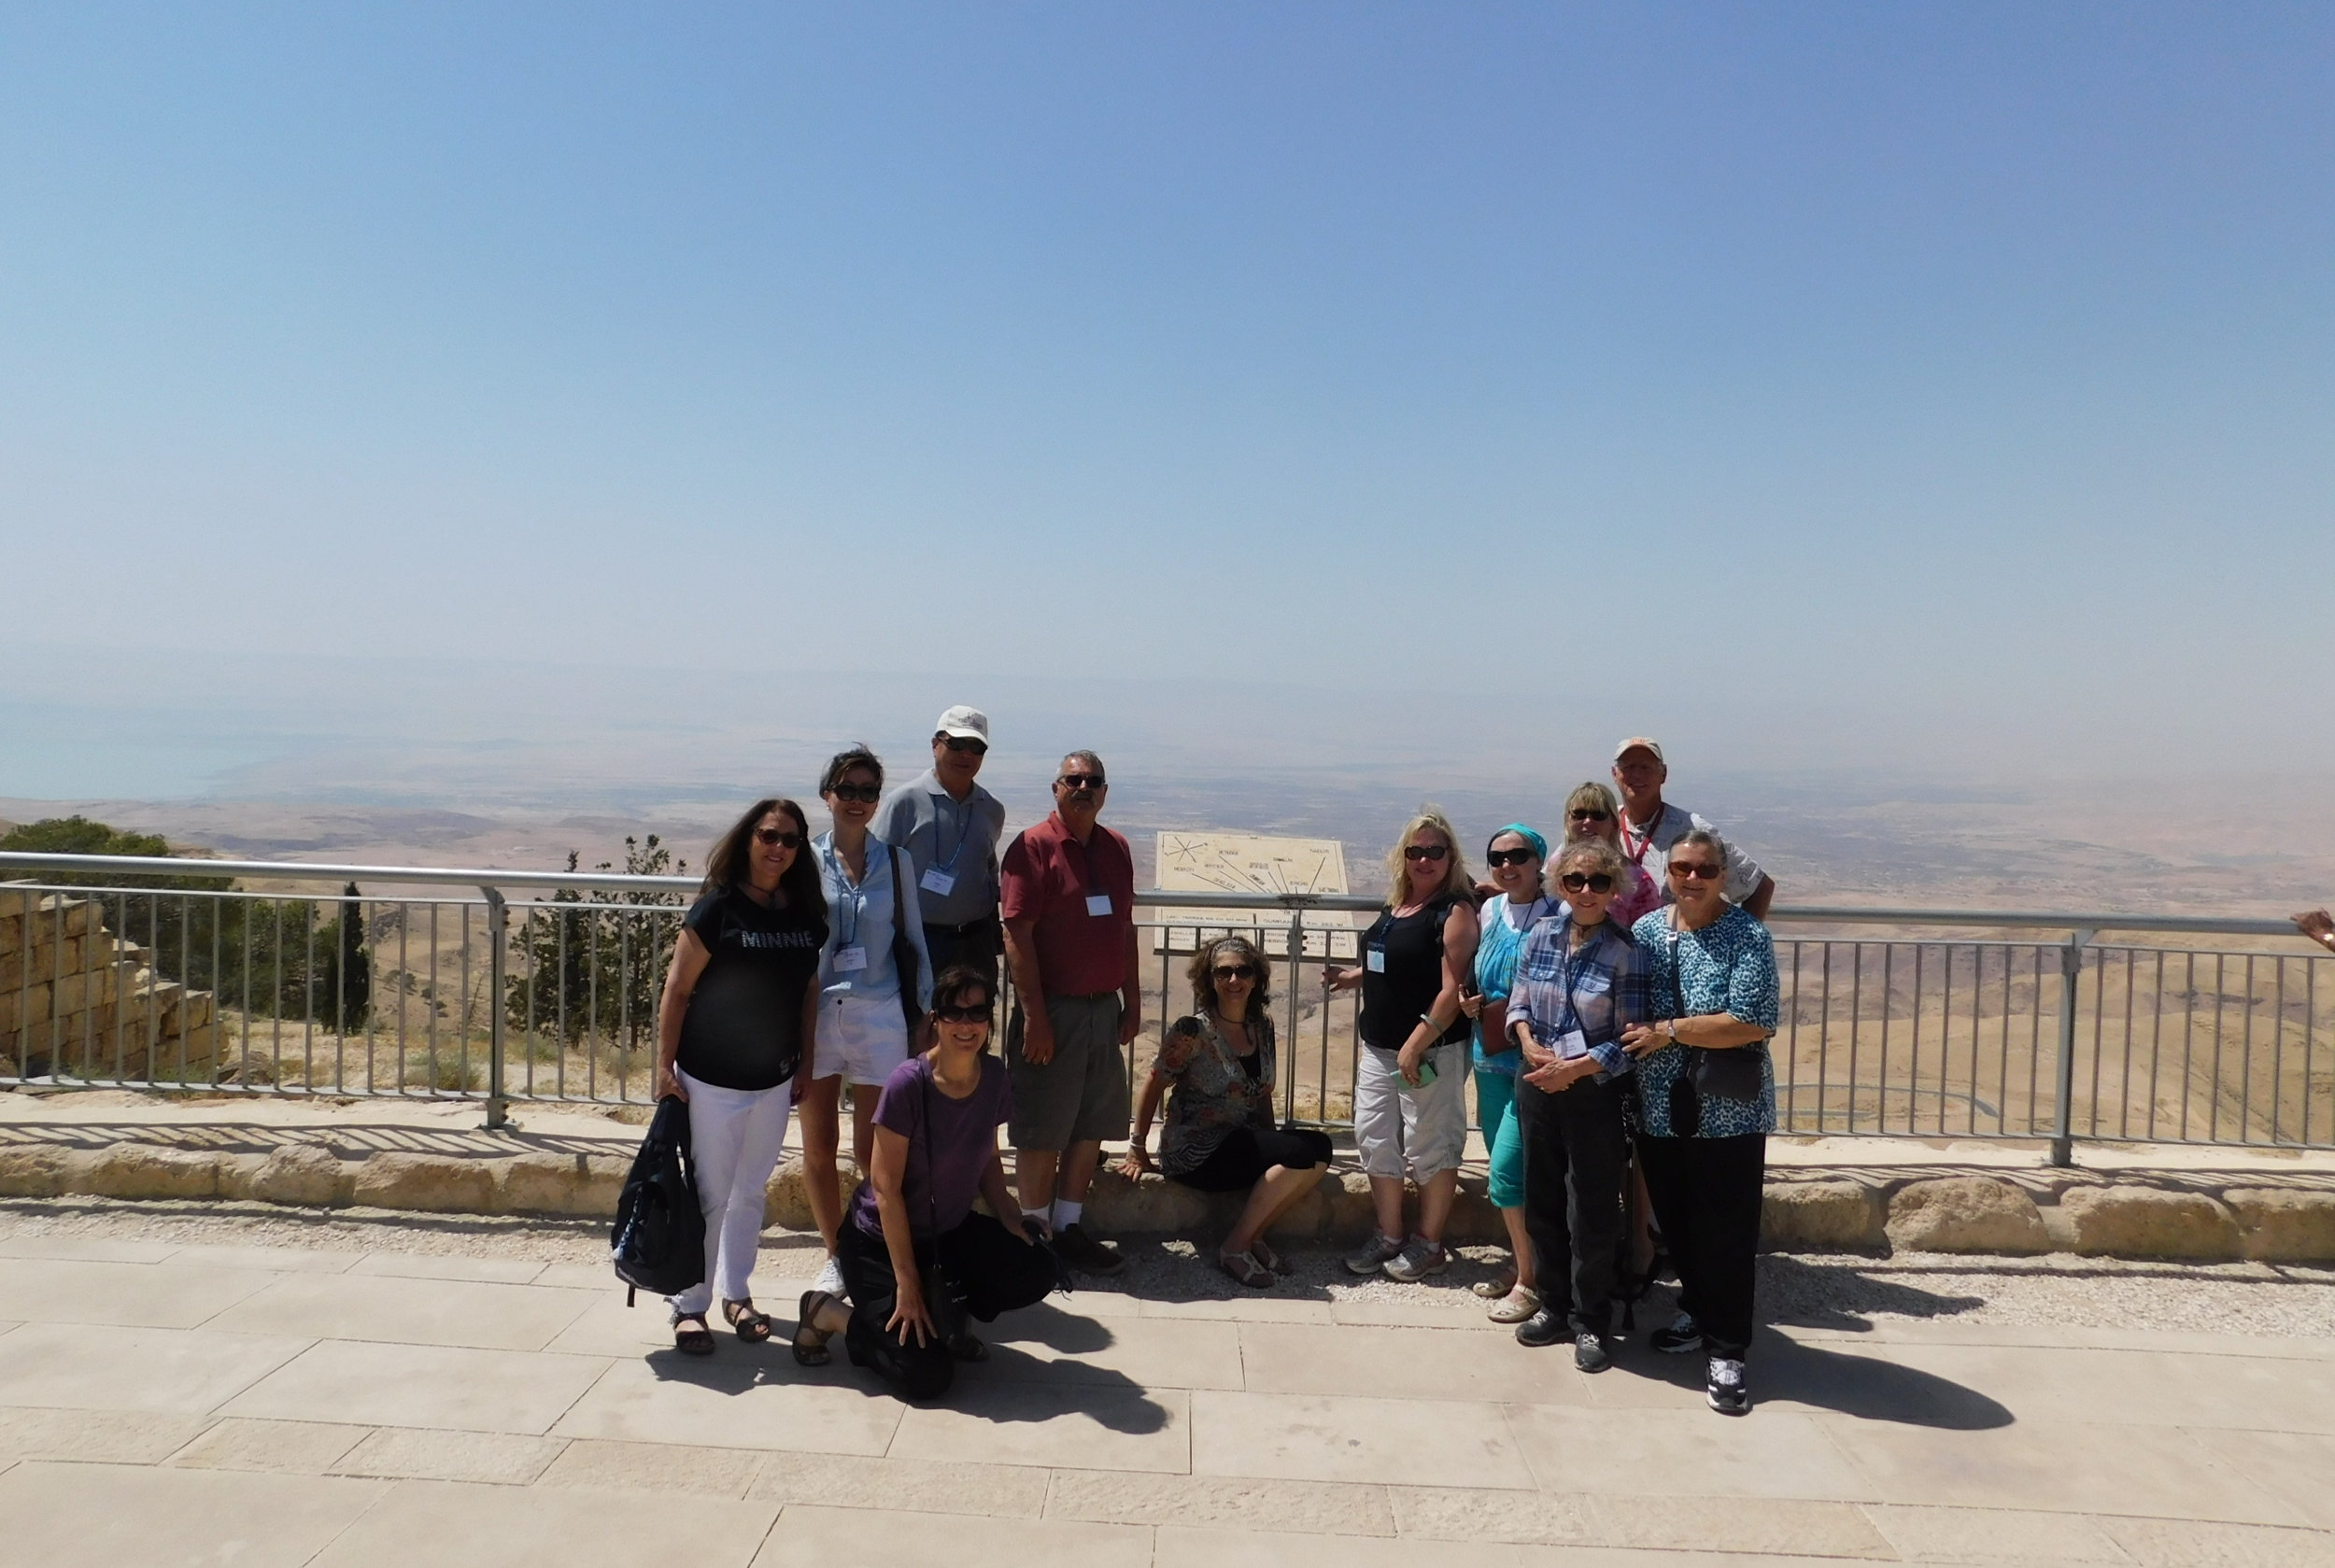 Mt. Nebo, where Moses looked at the Promised Land.